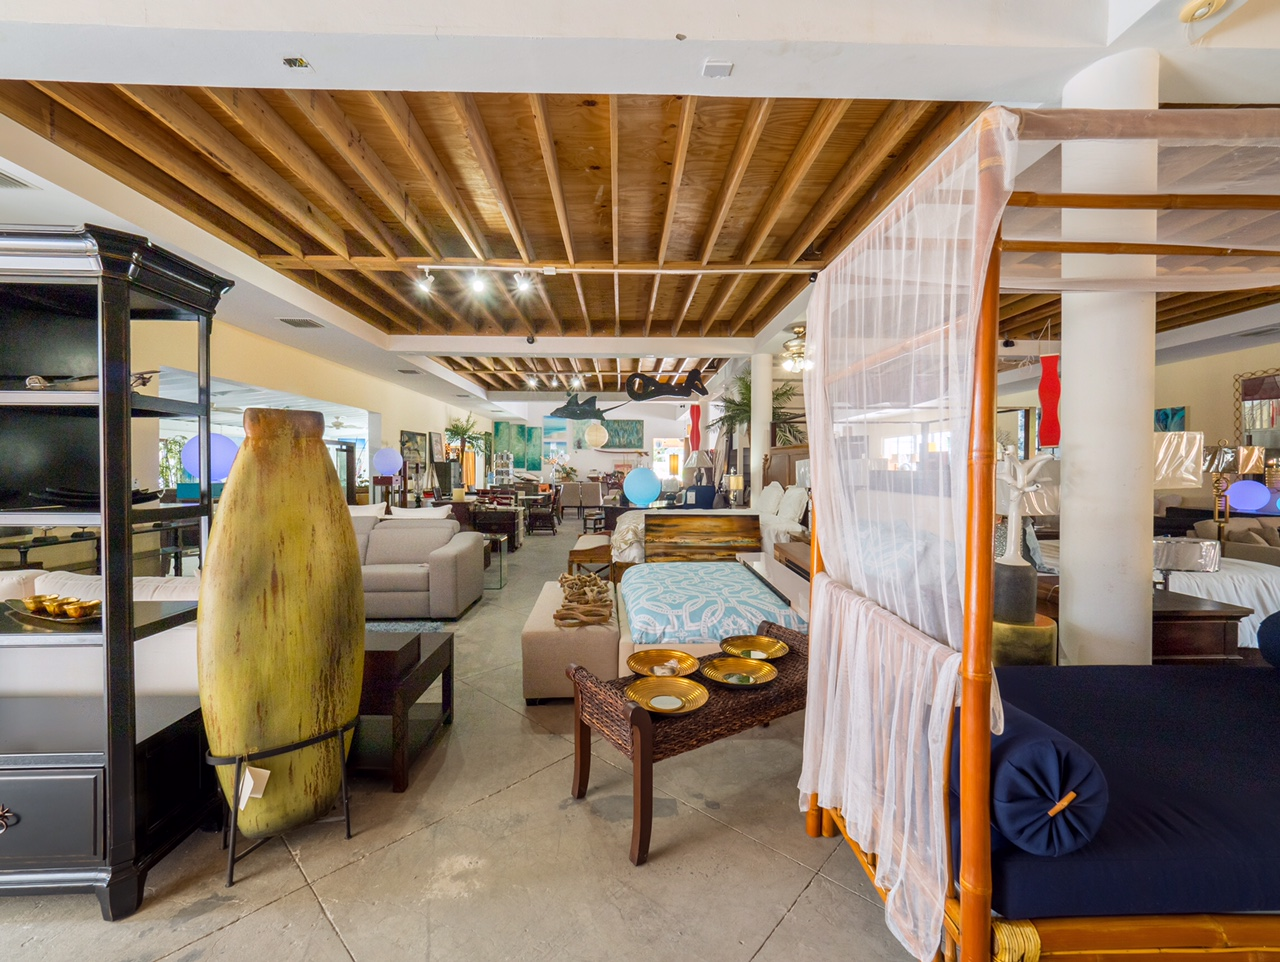 Island Furniture And Design Has Re Created Many Villas And Resort  Accommodations In The United States And Caribbean, Including Turks And  Caicos, ...